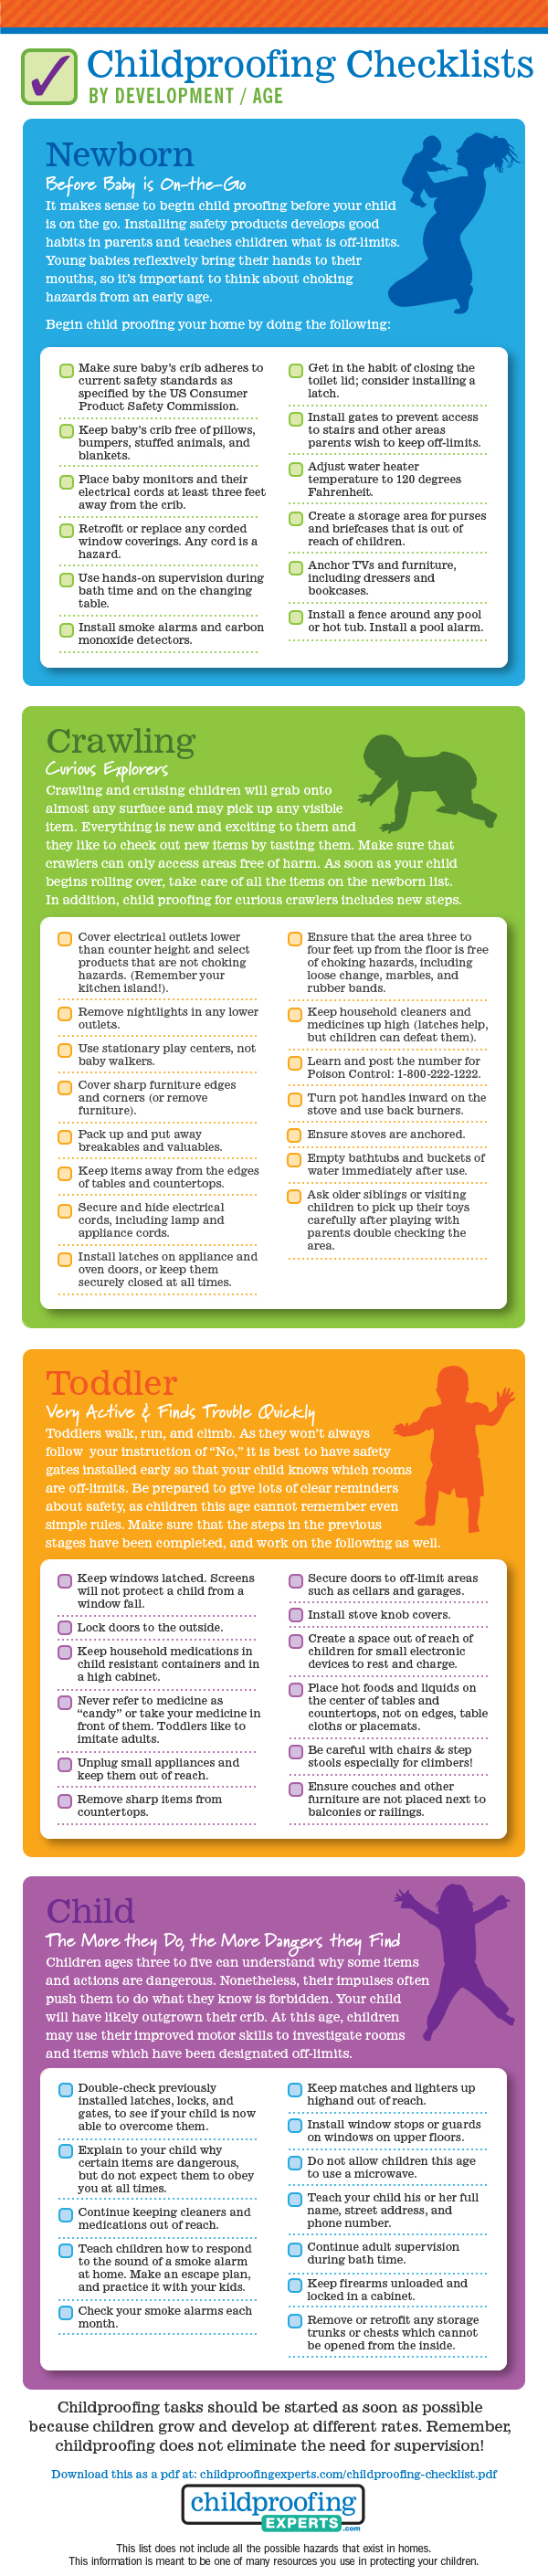 Child Proofing checklist by Age / Development